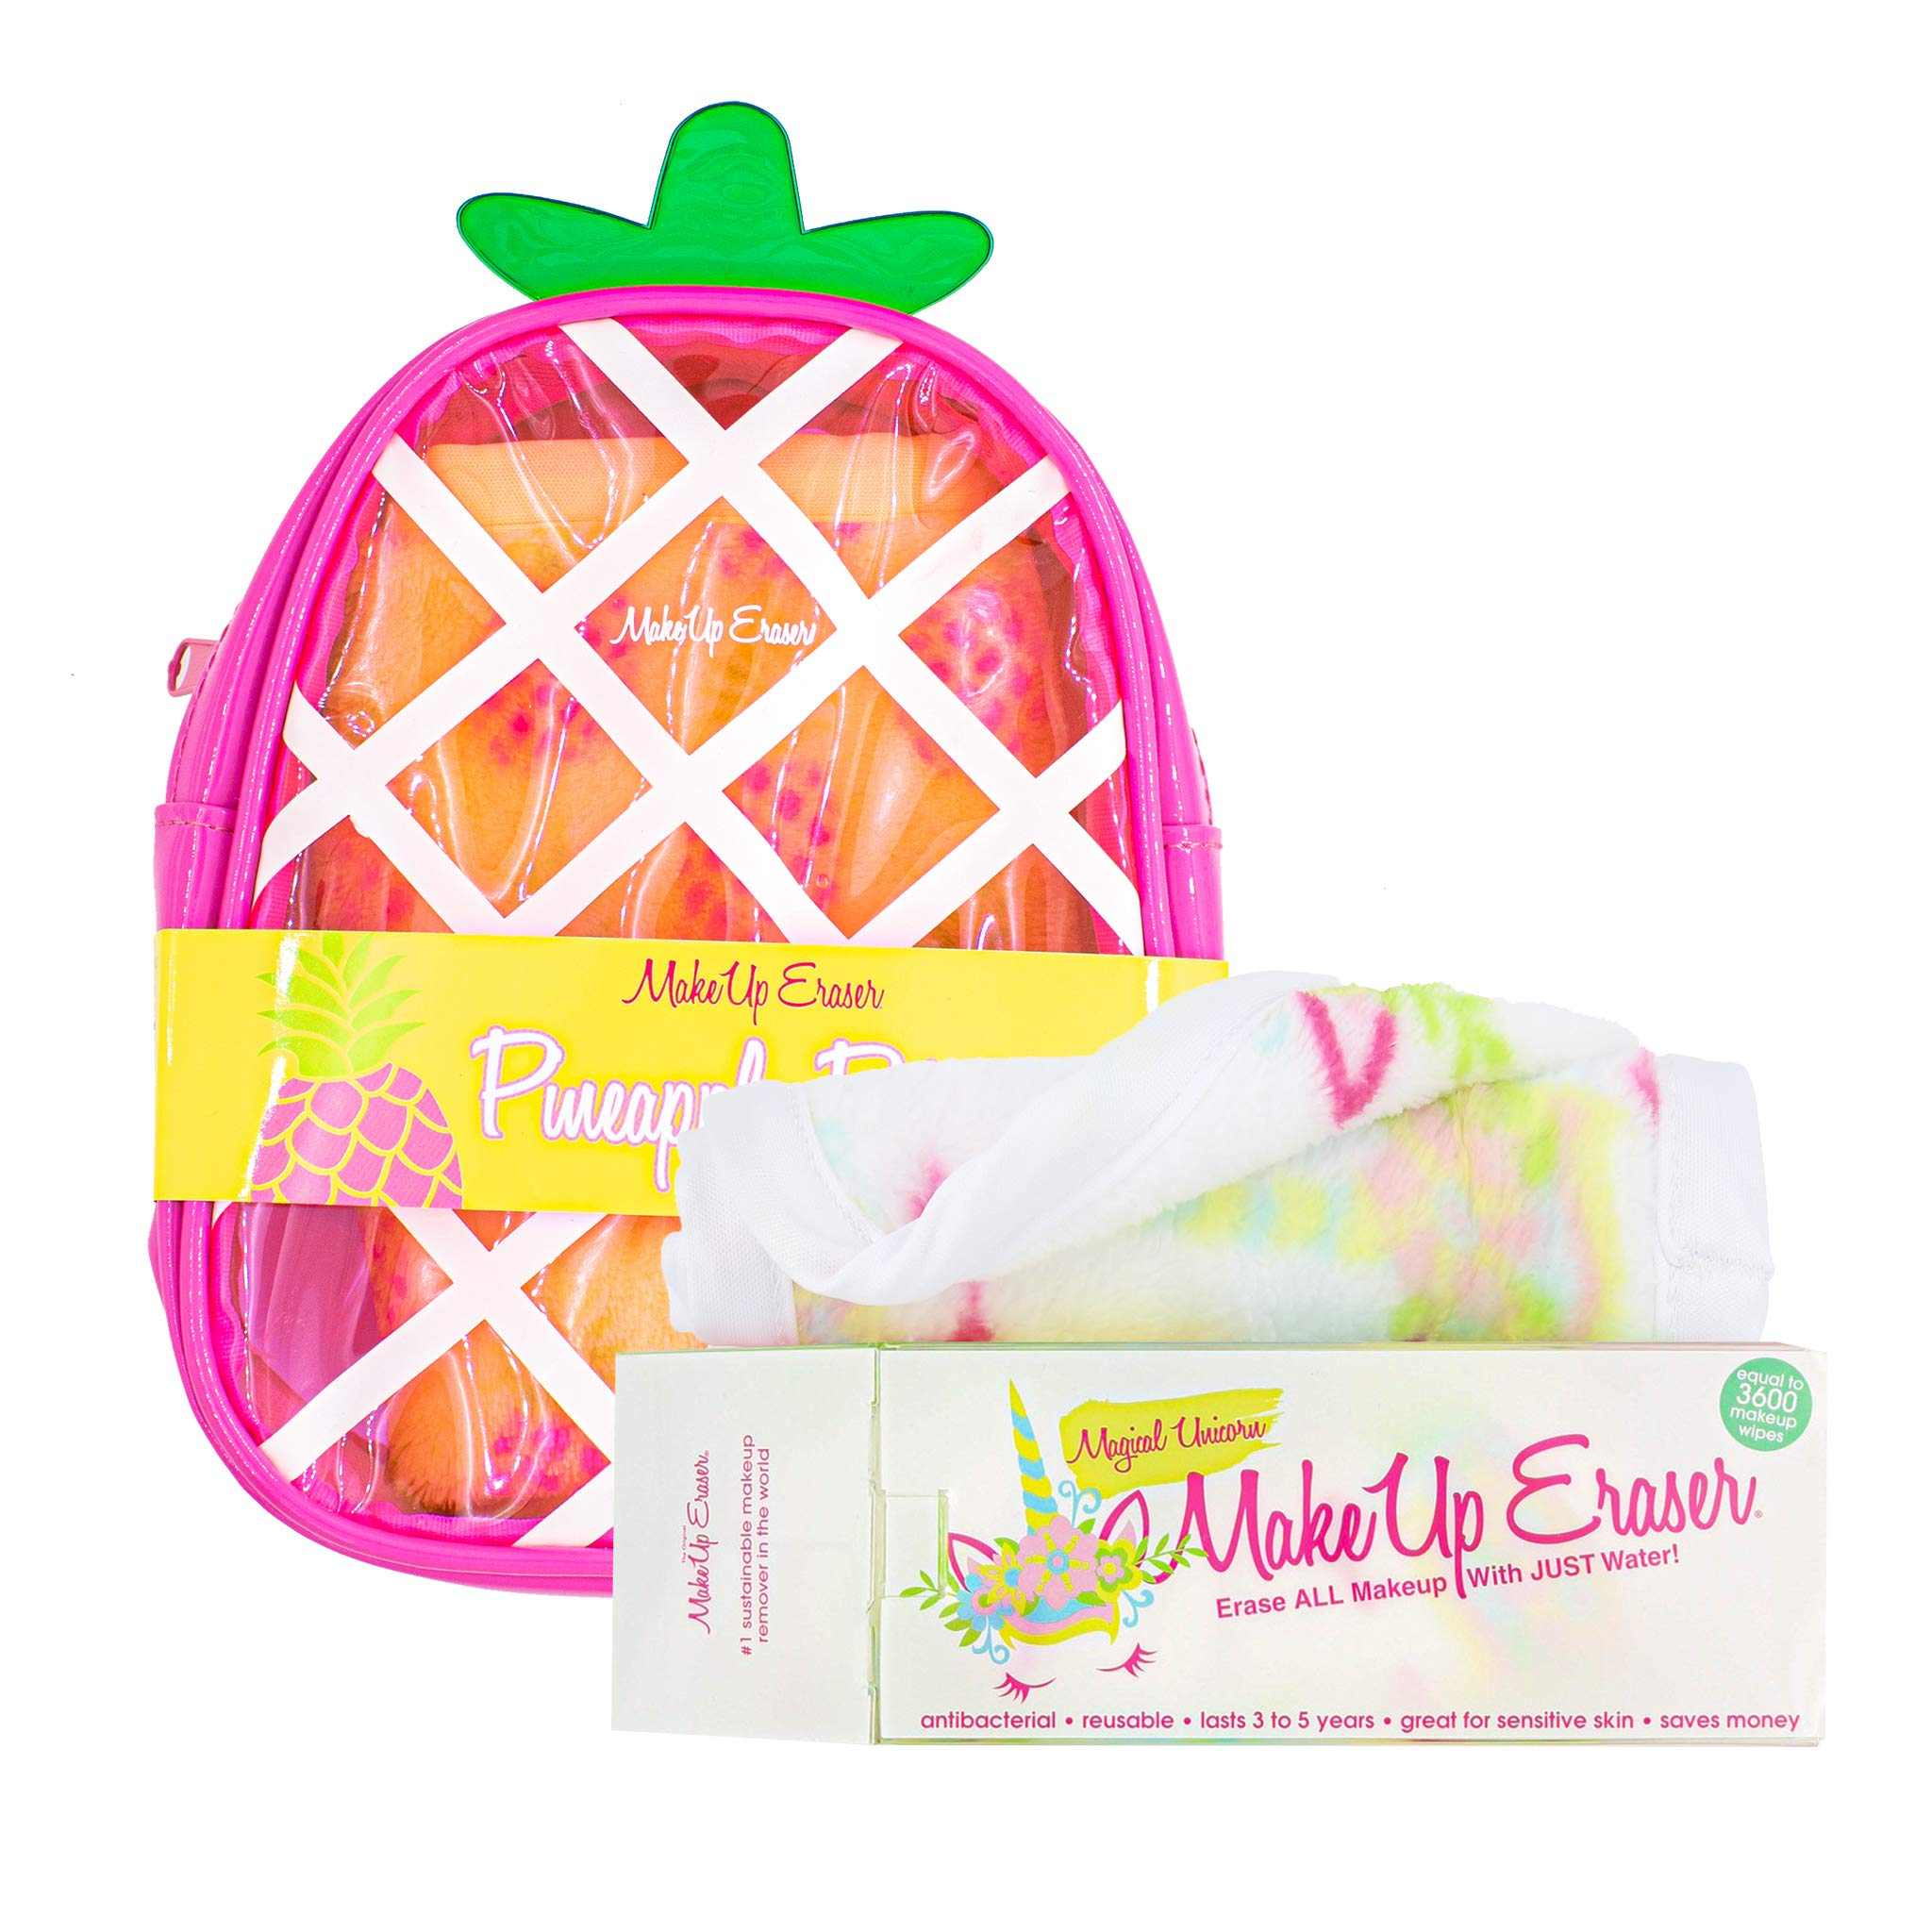 MakeUp Eraser Bundle, Unicorn & Pineapple. by Makeup Eraser (Image #1)